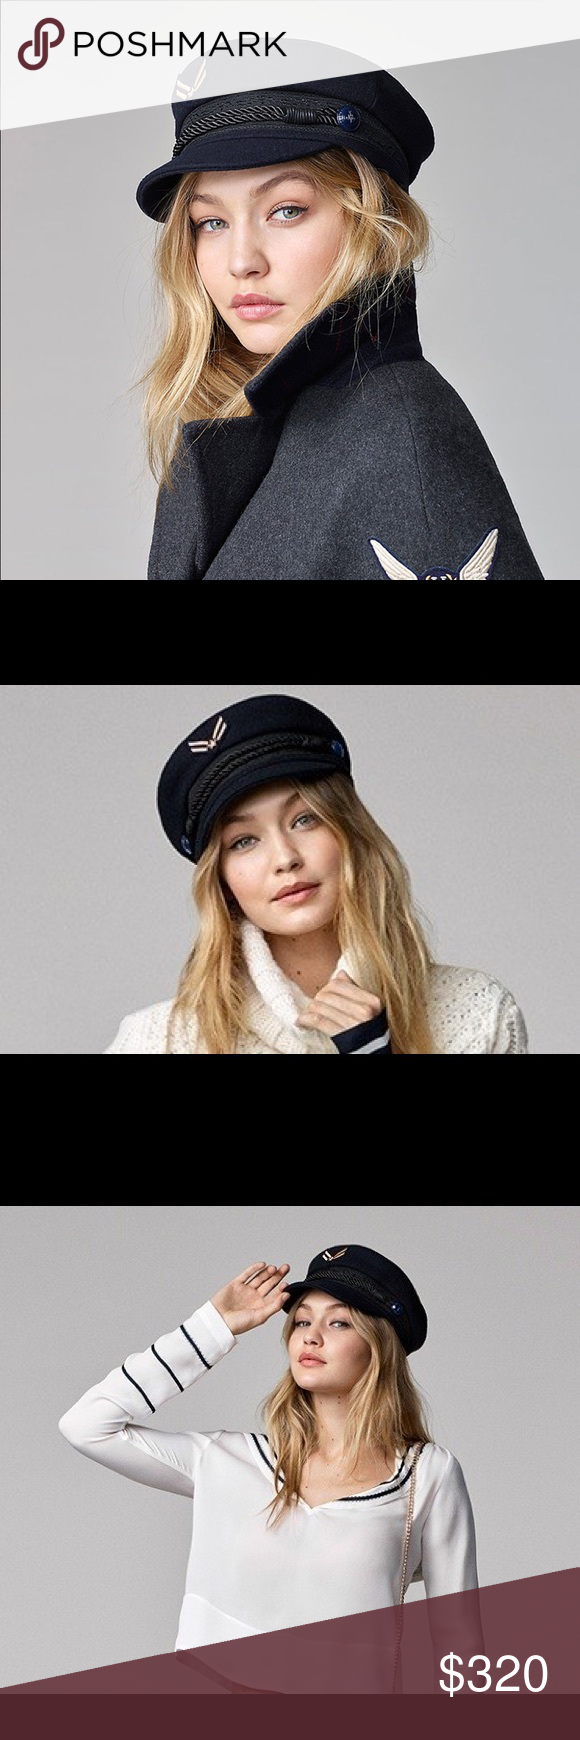 34e3e7a8 Gigi Hadid x Tommy Sailor Cap RARE Gigi Hadid Tommy Hilfiger Wool nautical  hat. Navy Blue. Brand new without tags. Sold out everywhere. Iconic hat!